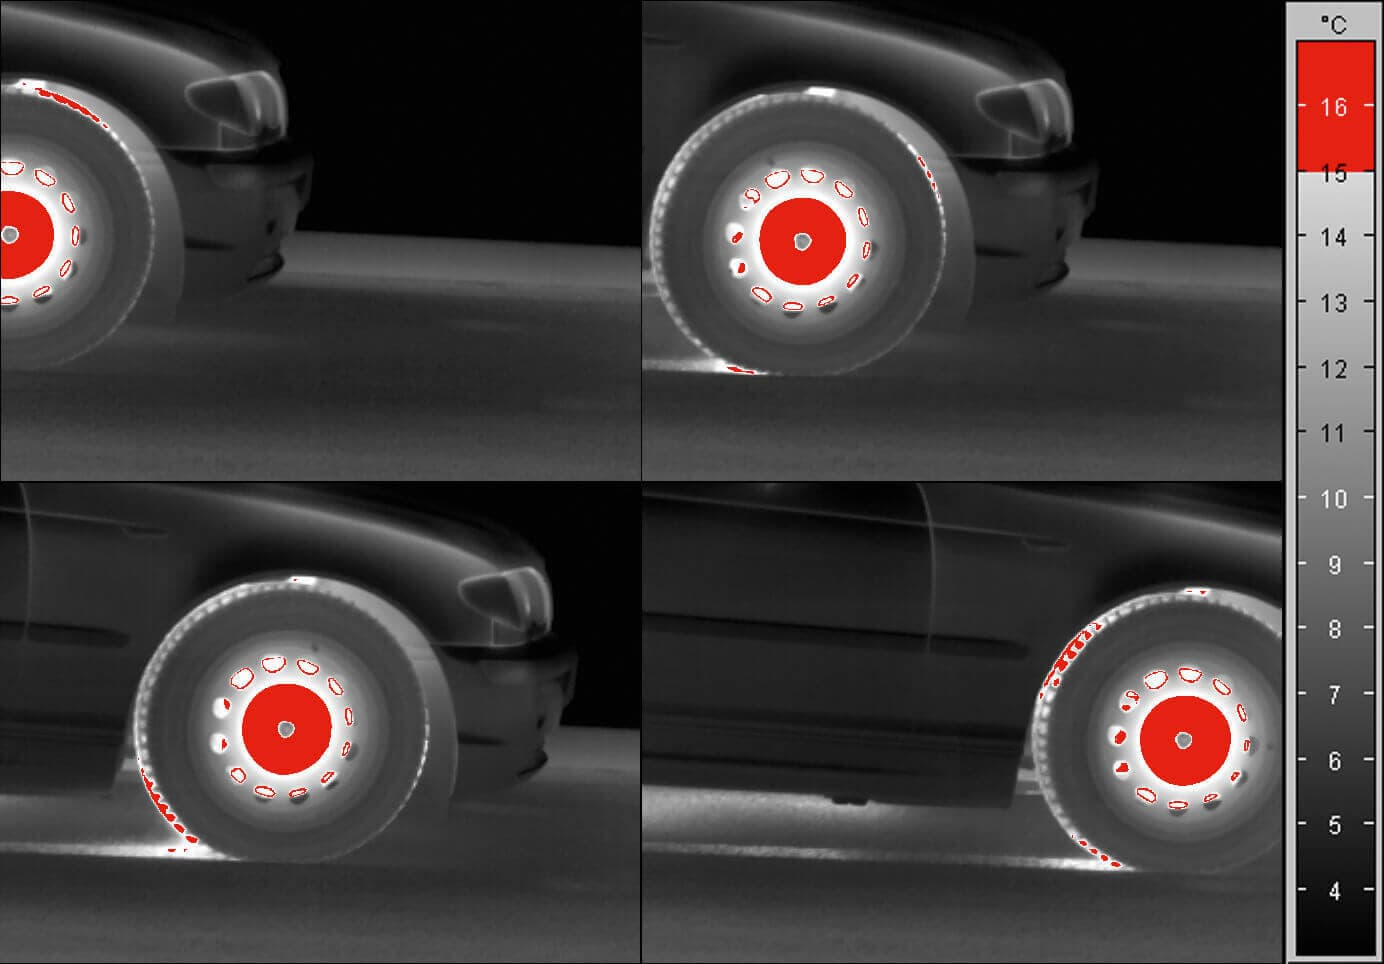 ABS brake test - Recording with high-speed camera